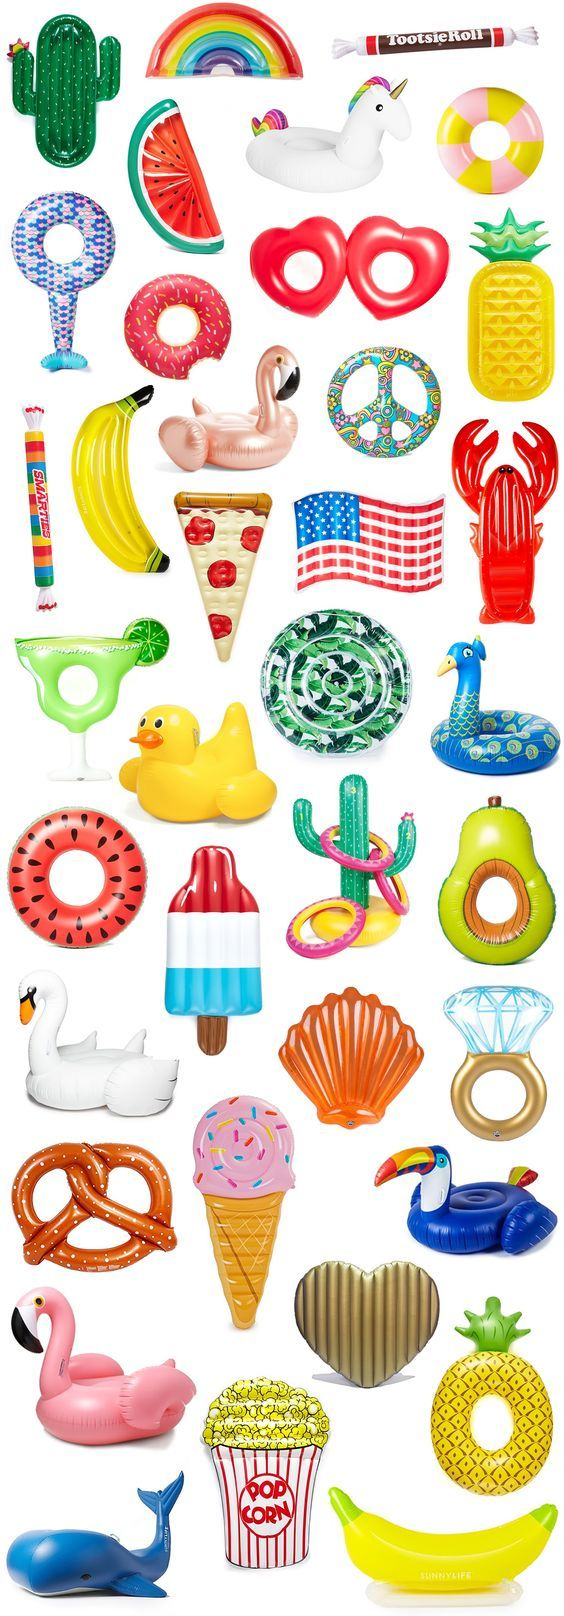 Want to find the perfect pool float for your next summer party? Check out the collection of the best summer pool floats at AlwaysFits.com.